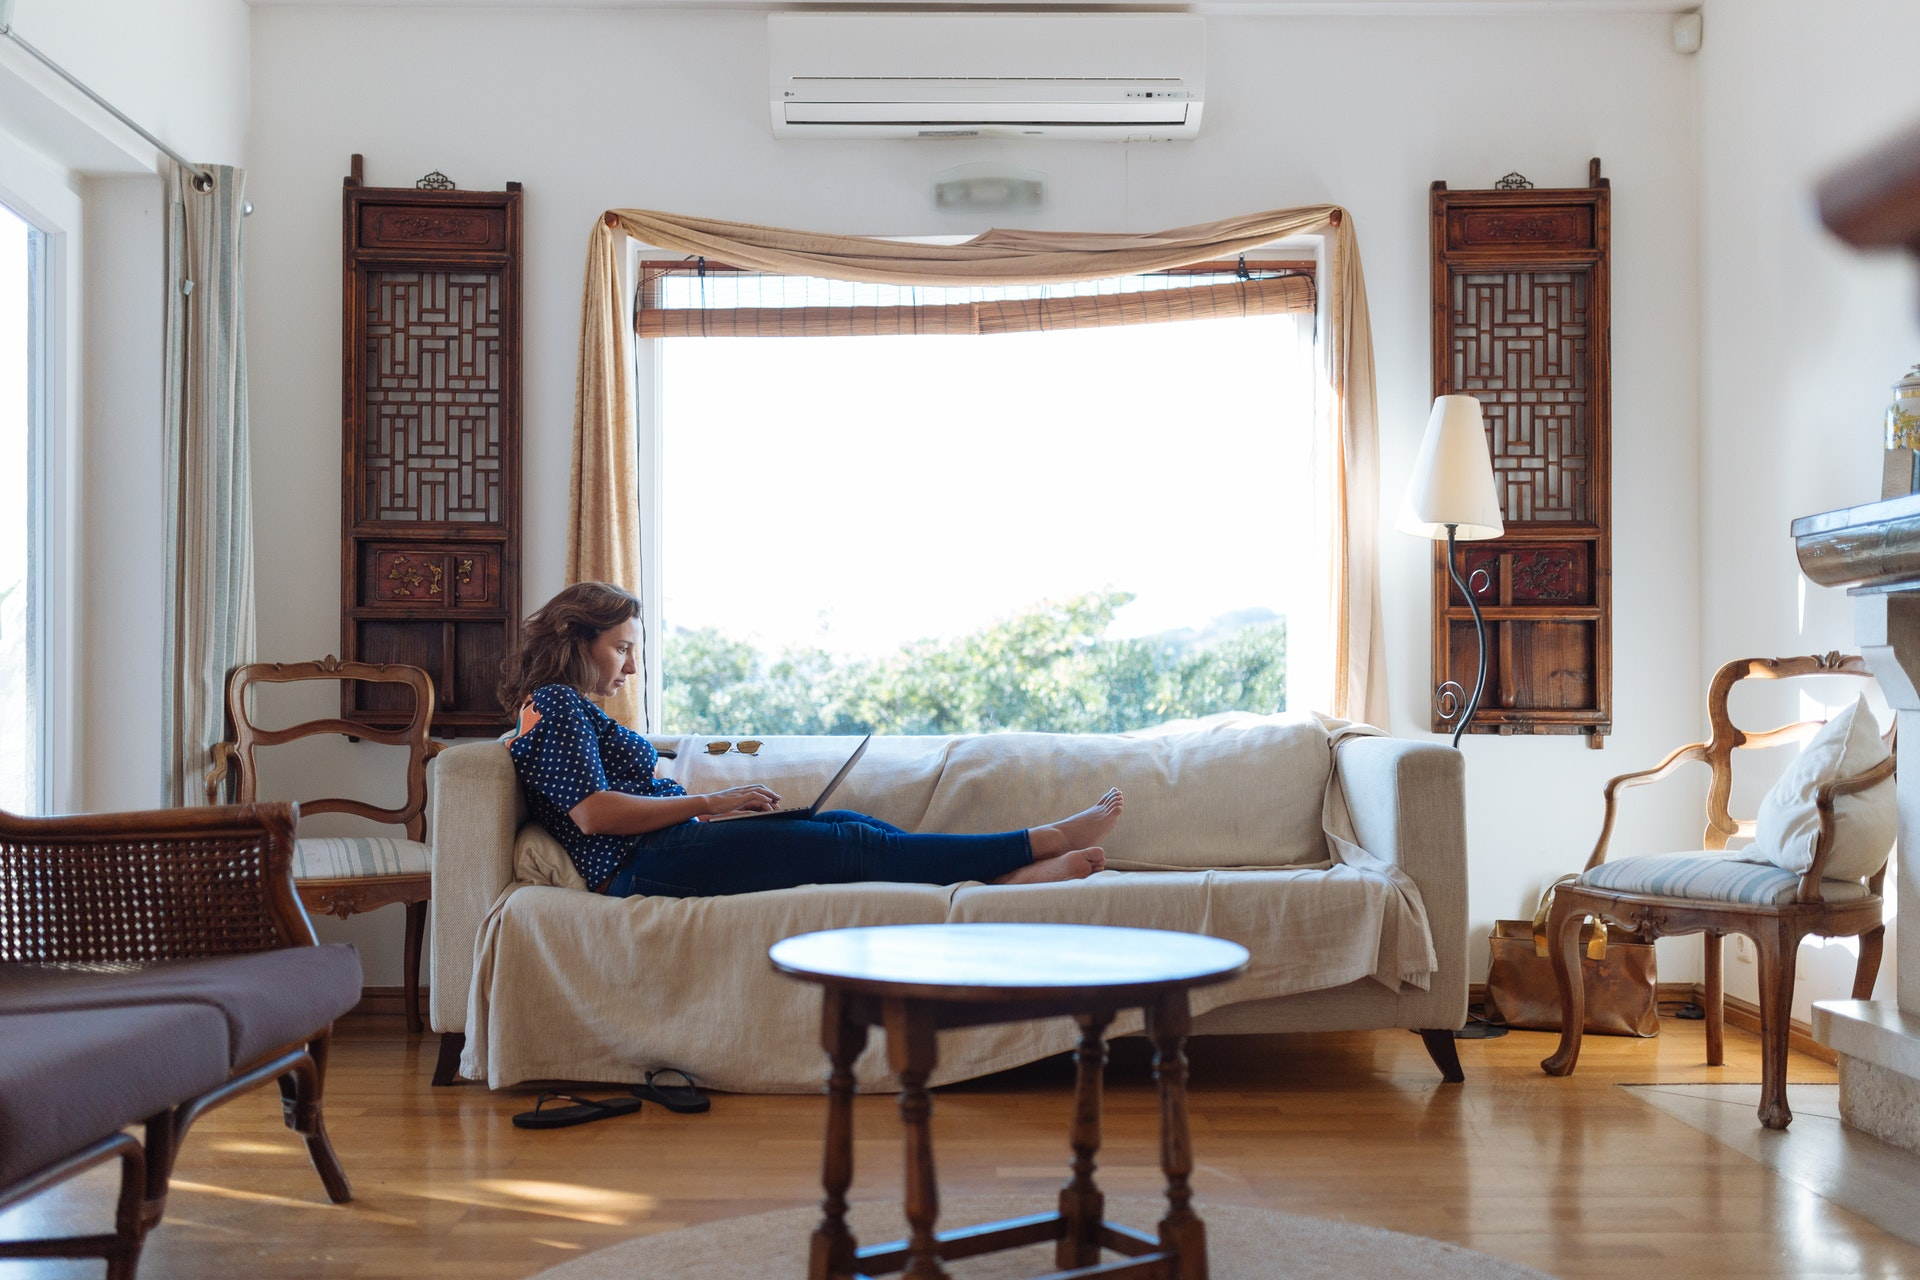 How to choose an air conditioner which is suitable for your room